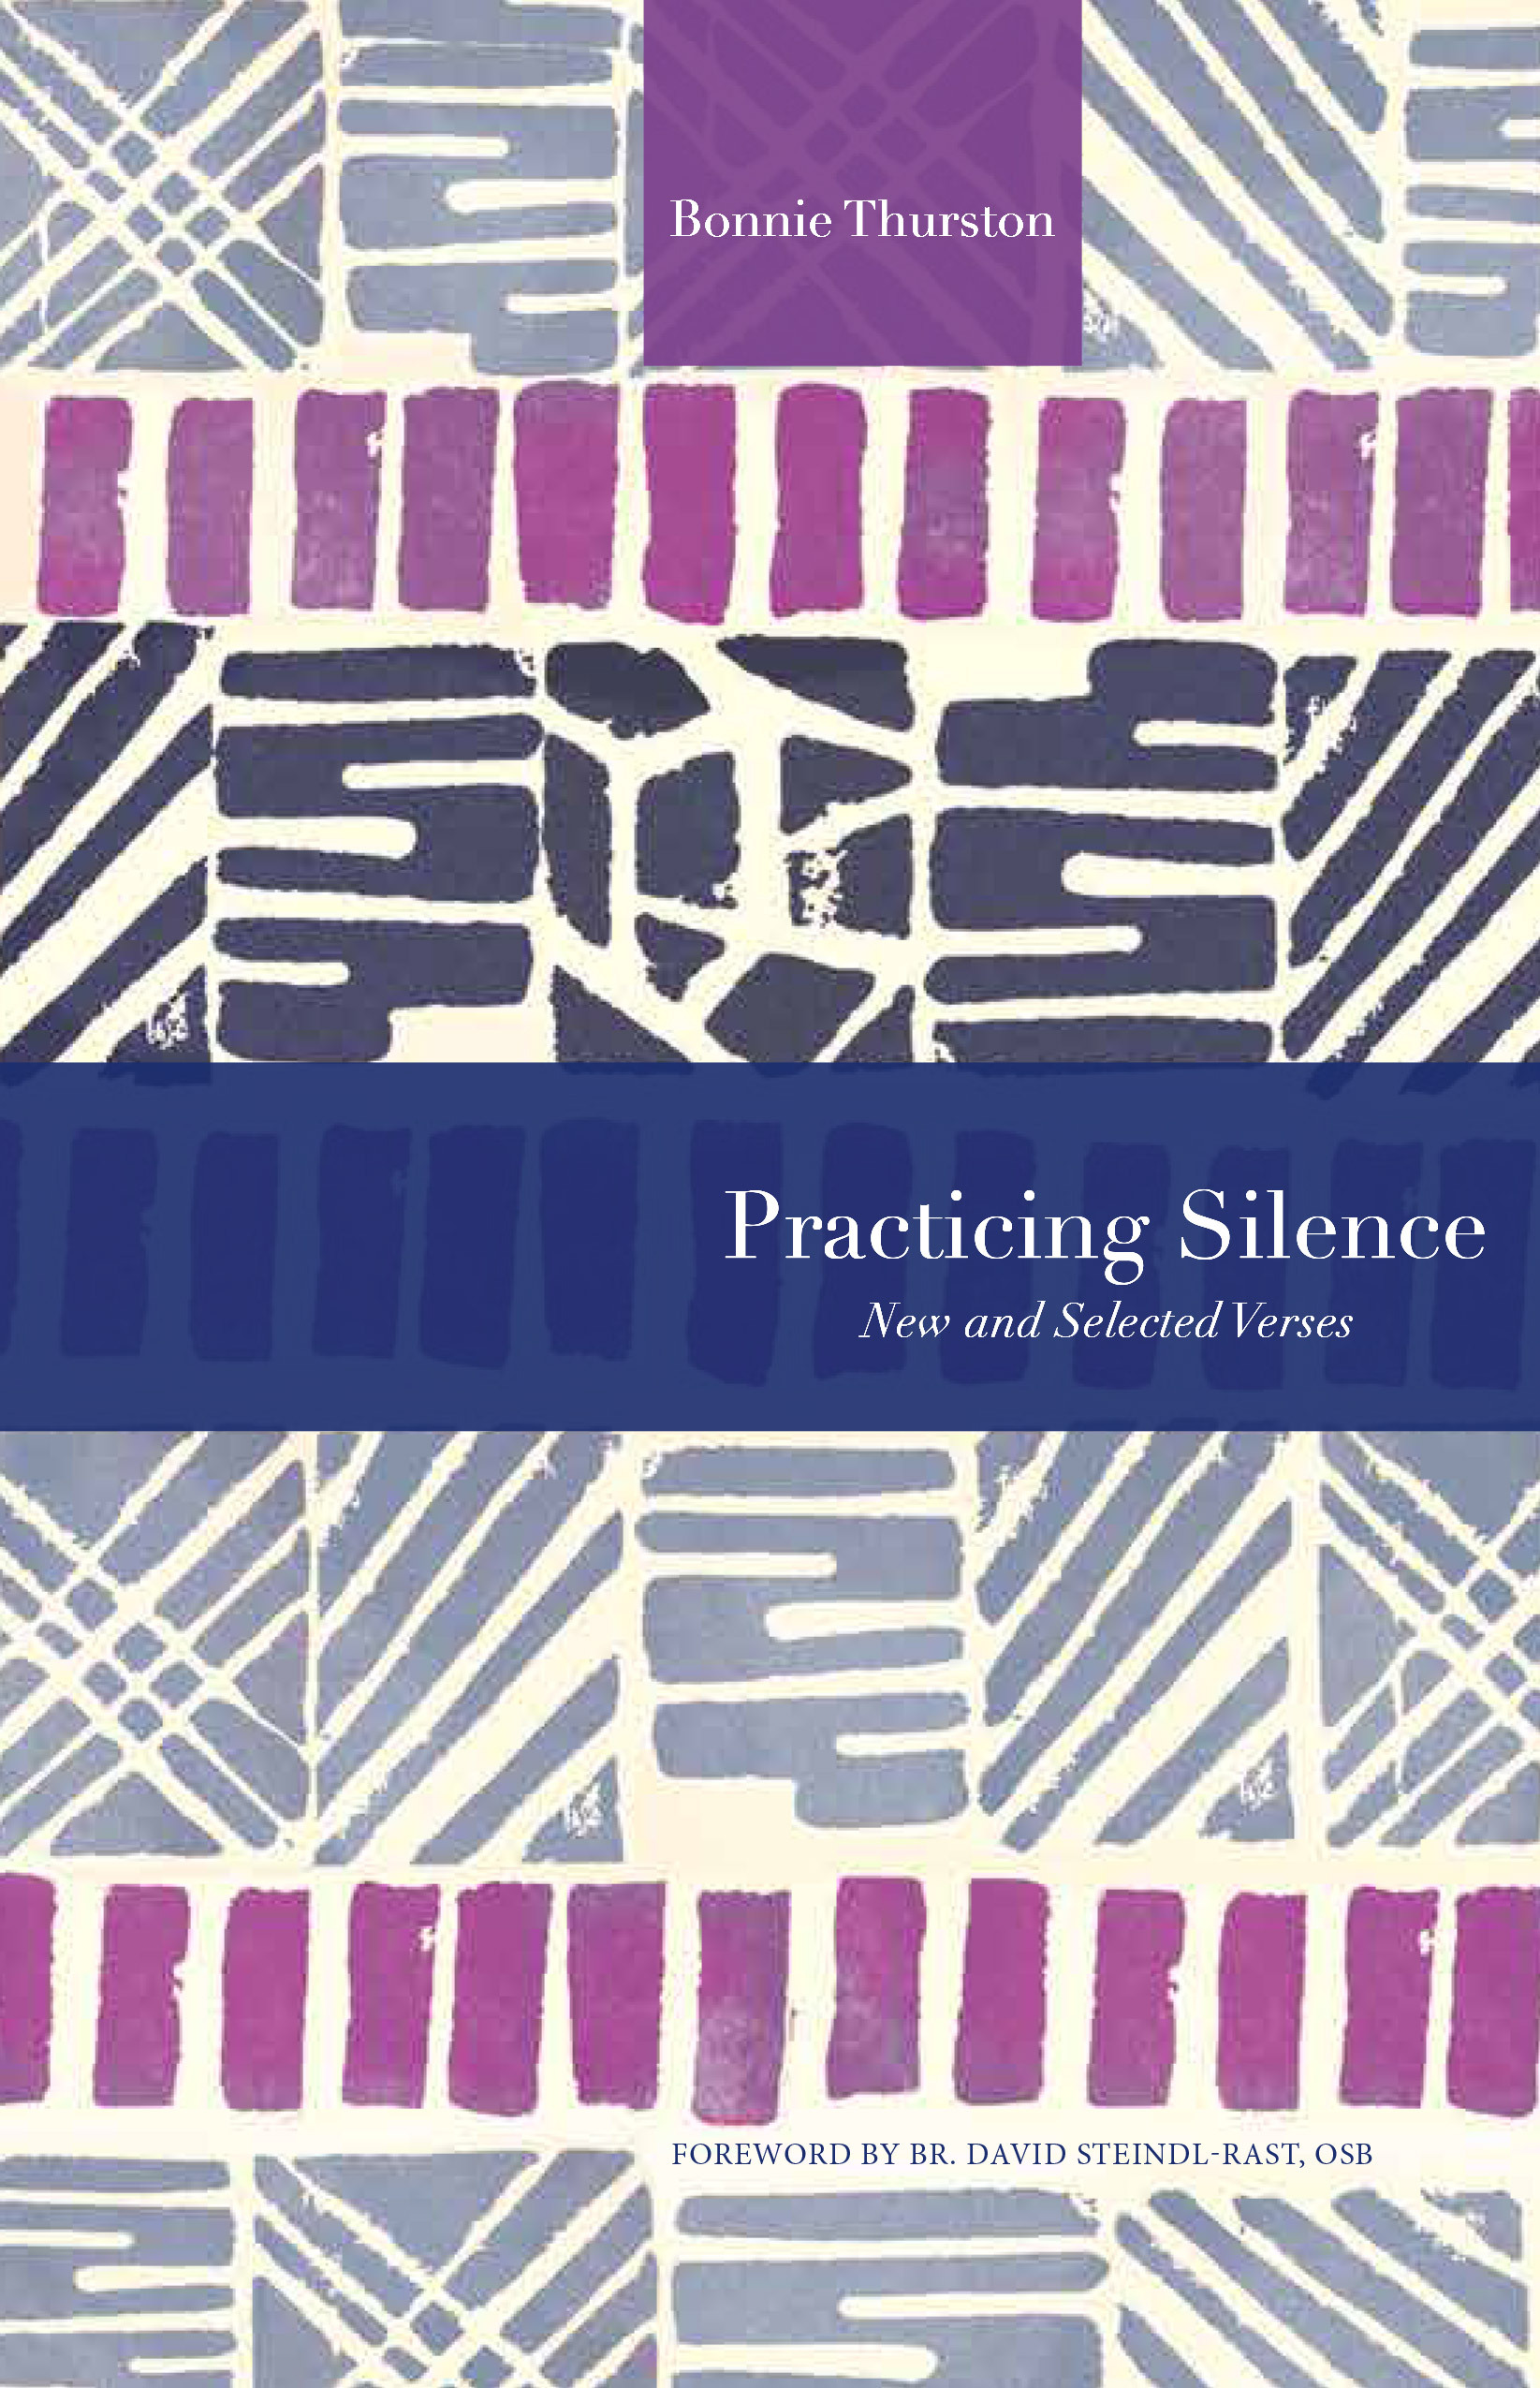 Practicing Silence: New and Selected Verses